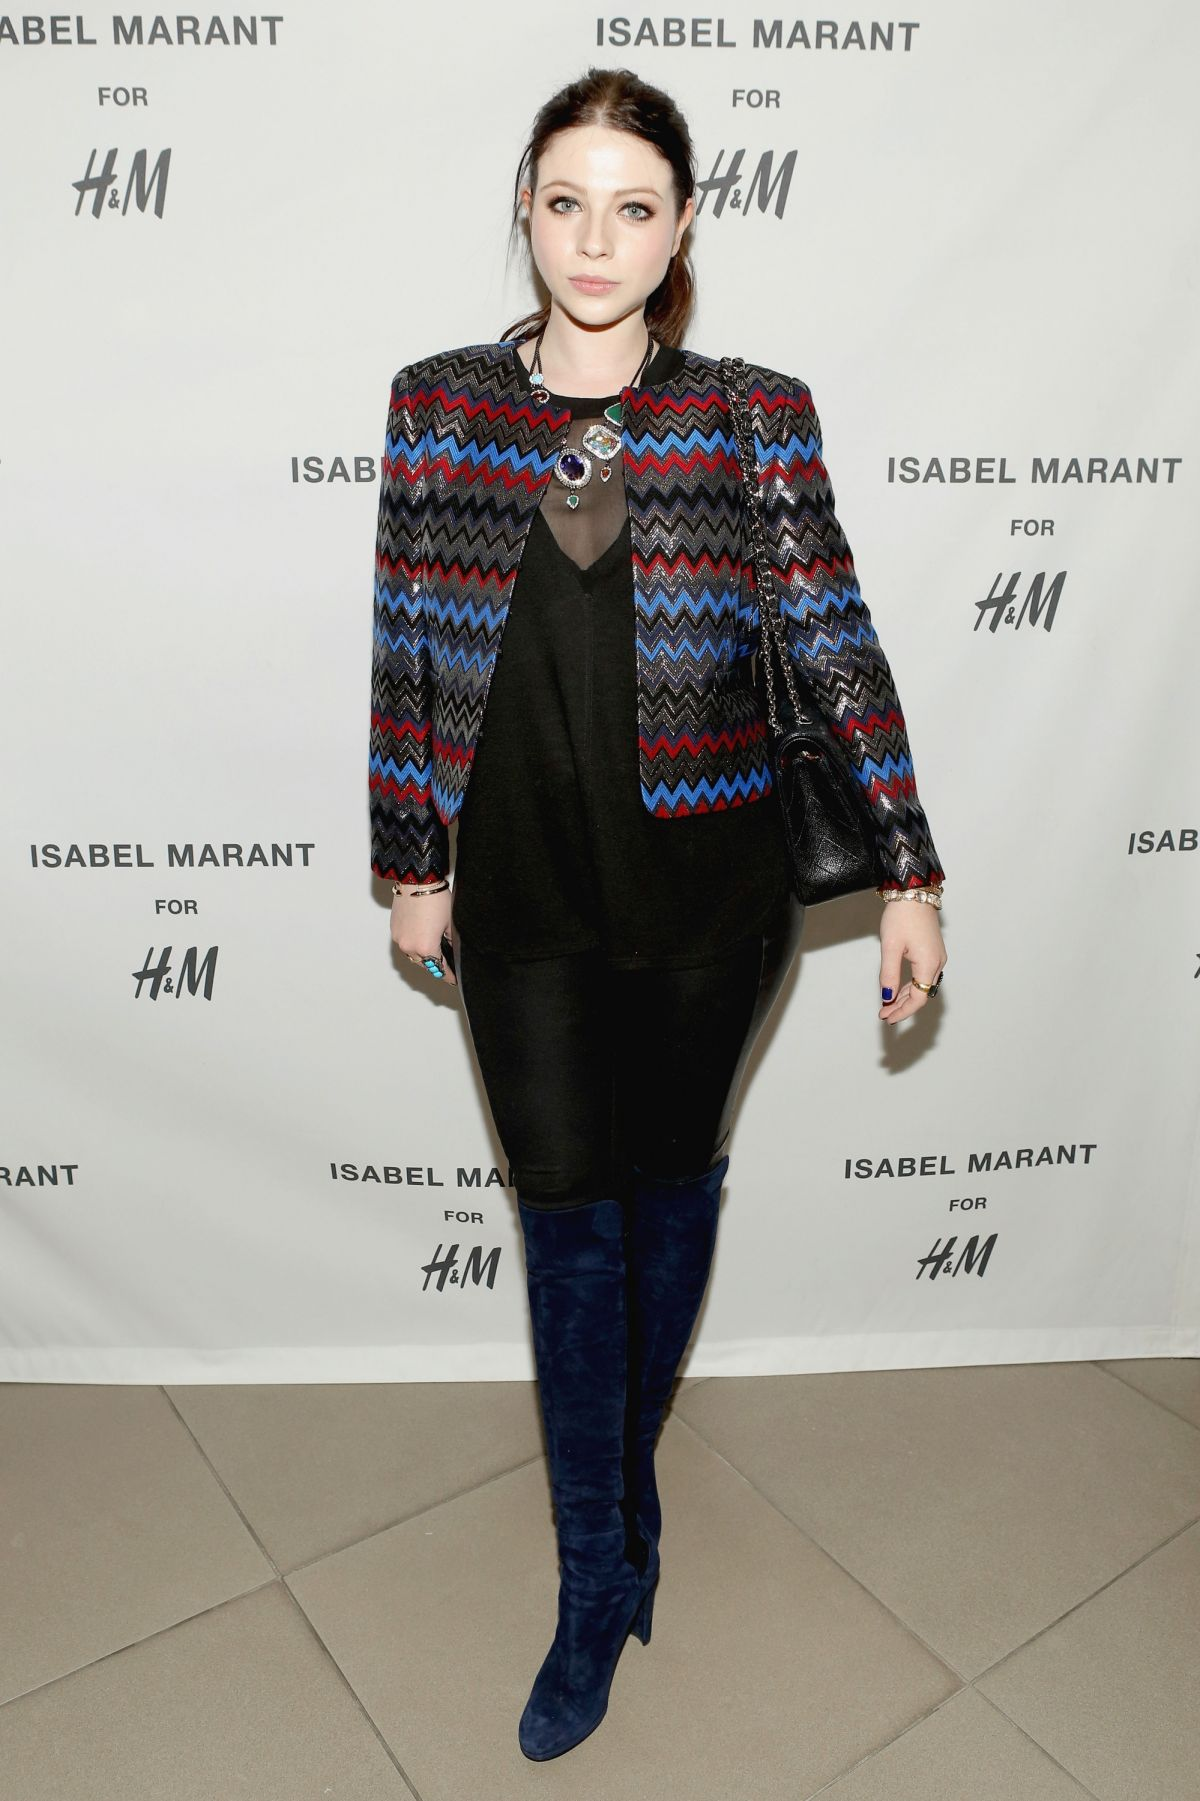 Michelle Trachtenberg At H&M Isabel Marant VIP Pre Shop Event In West Hollywood